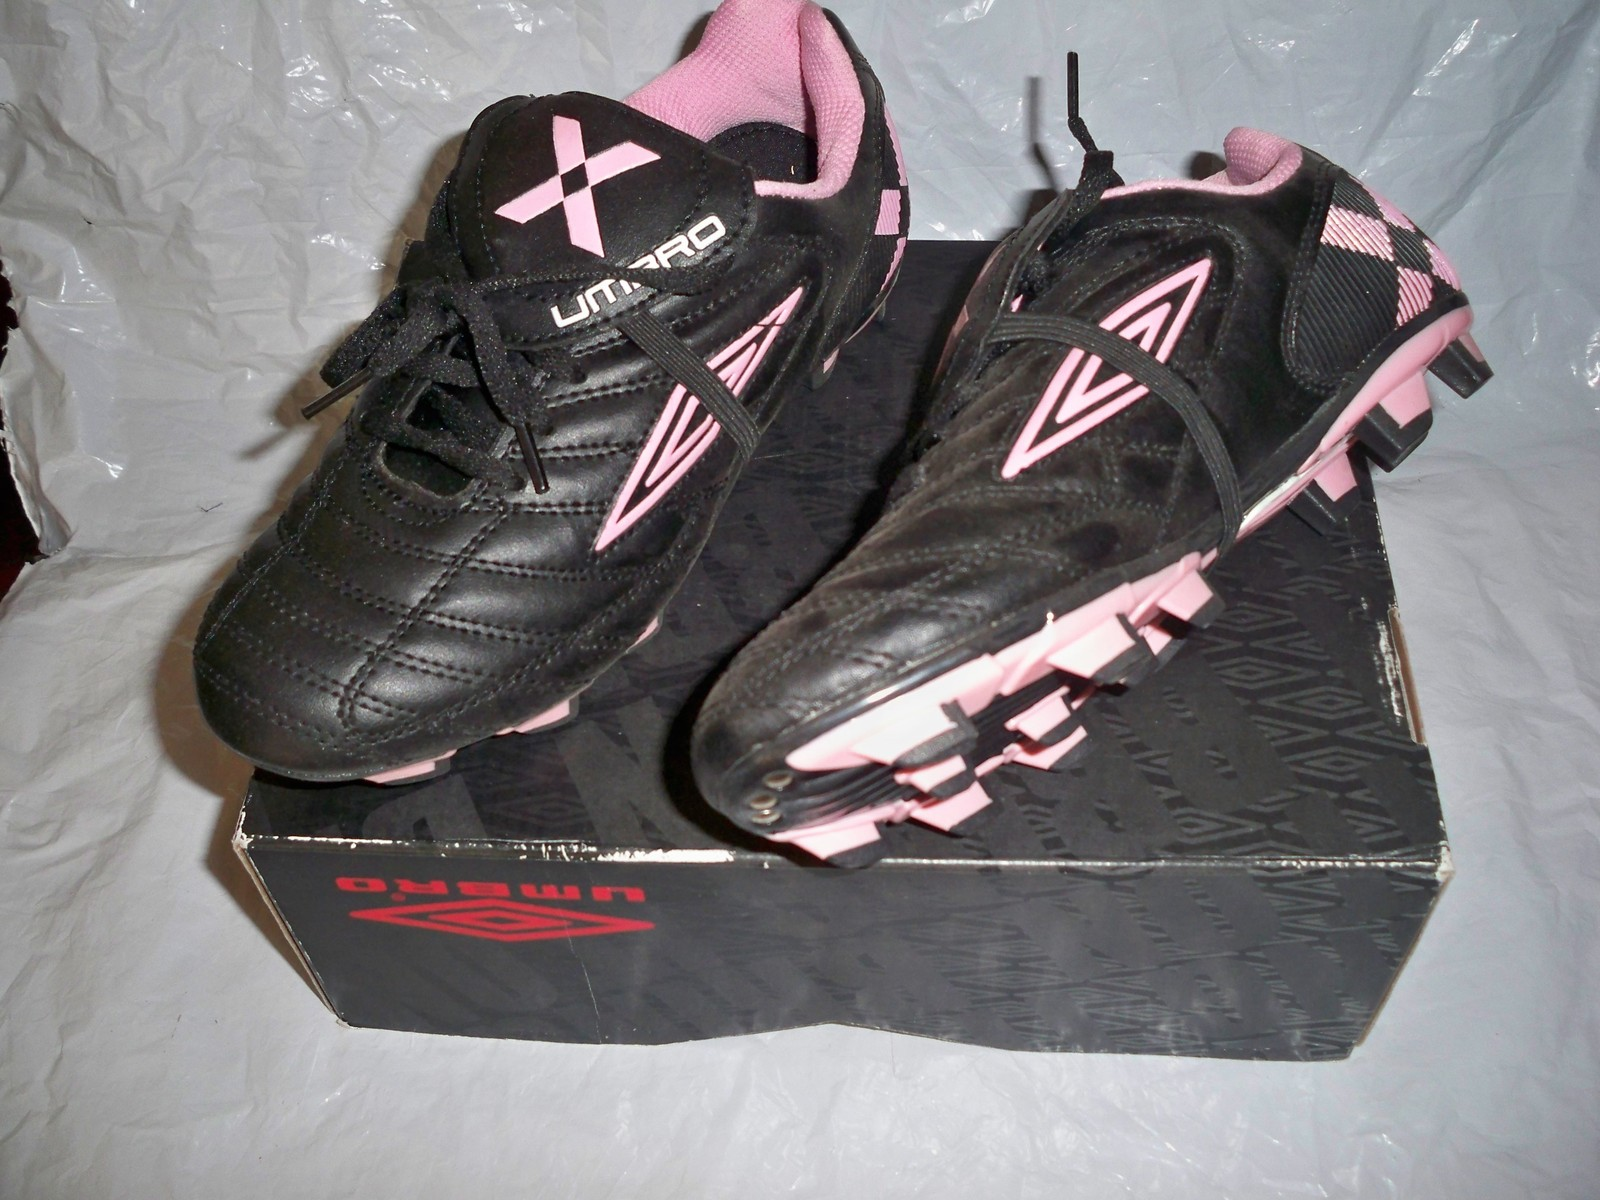 new product d2447 00e6a WOMEN S UMBRO CORSICA FORCE SOCCER CLEATS SHOES BLACK PINK NEW  68 SIZE 6 -   48.99